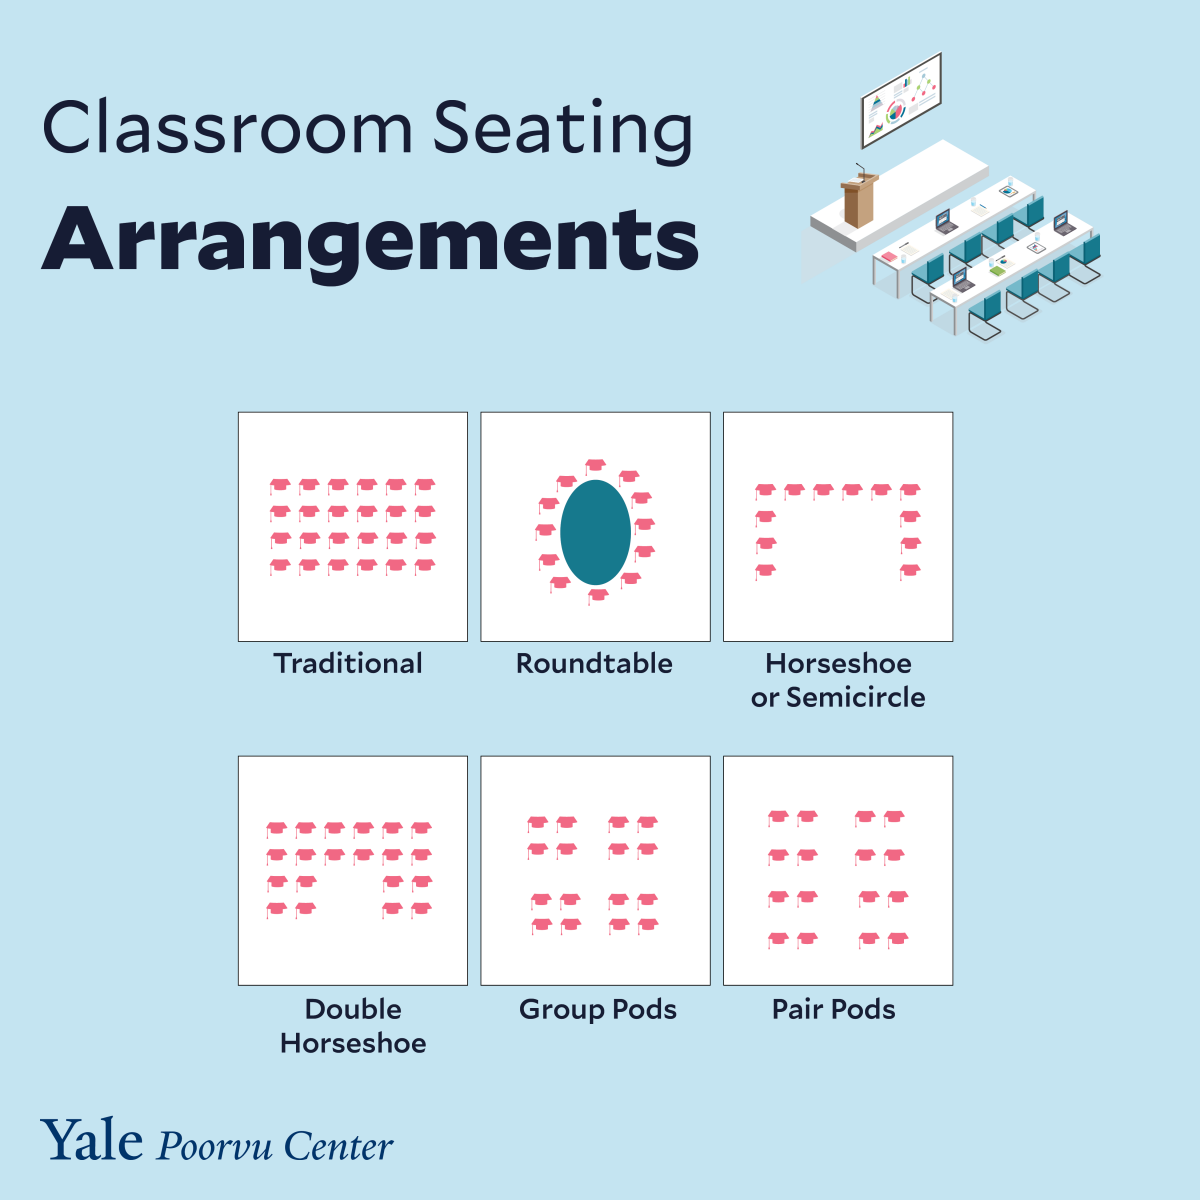 Six examples of seating arrangements